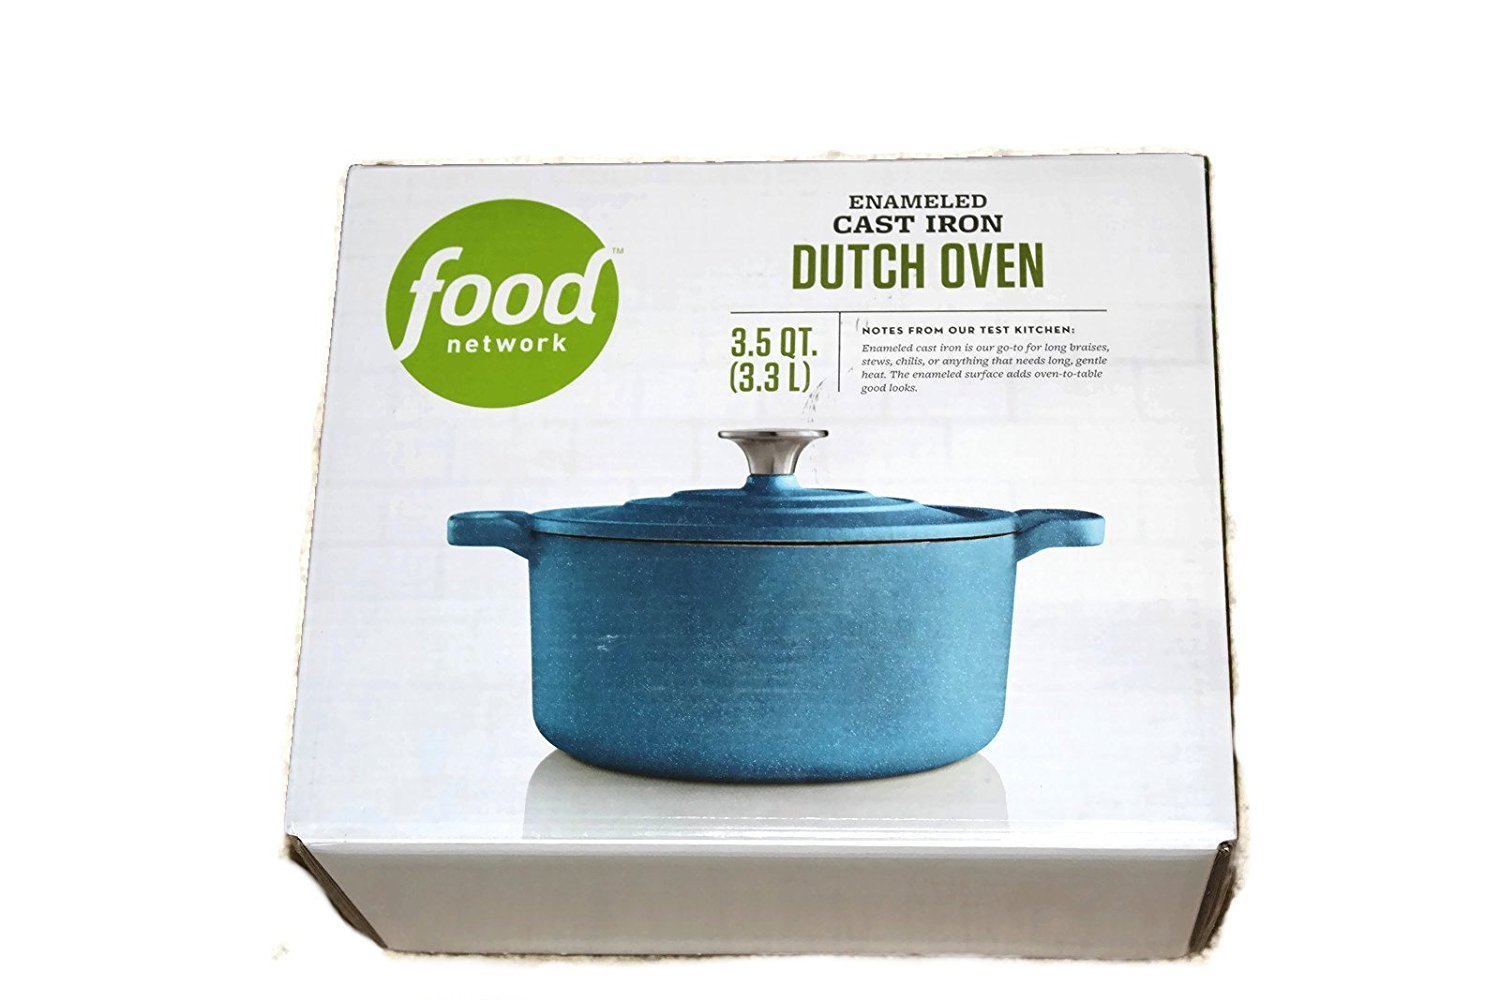 Amazon.com: Food Network 3.5 qt Enameled Cast-Iron Dutch Oven Light ...